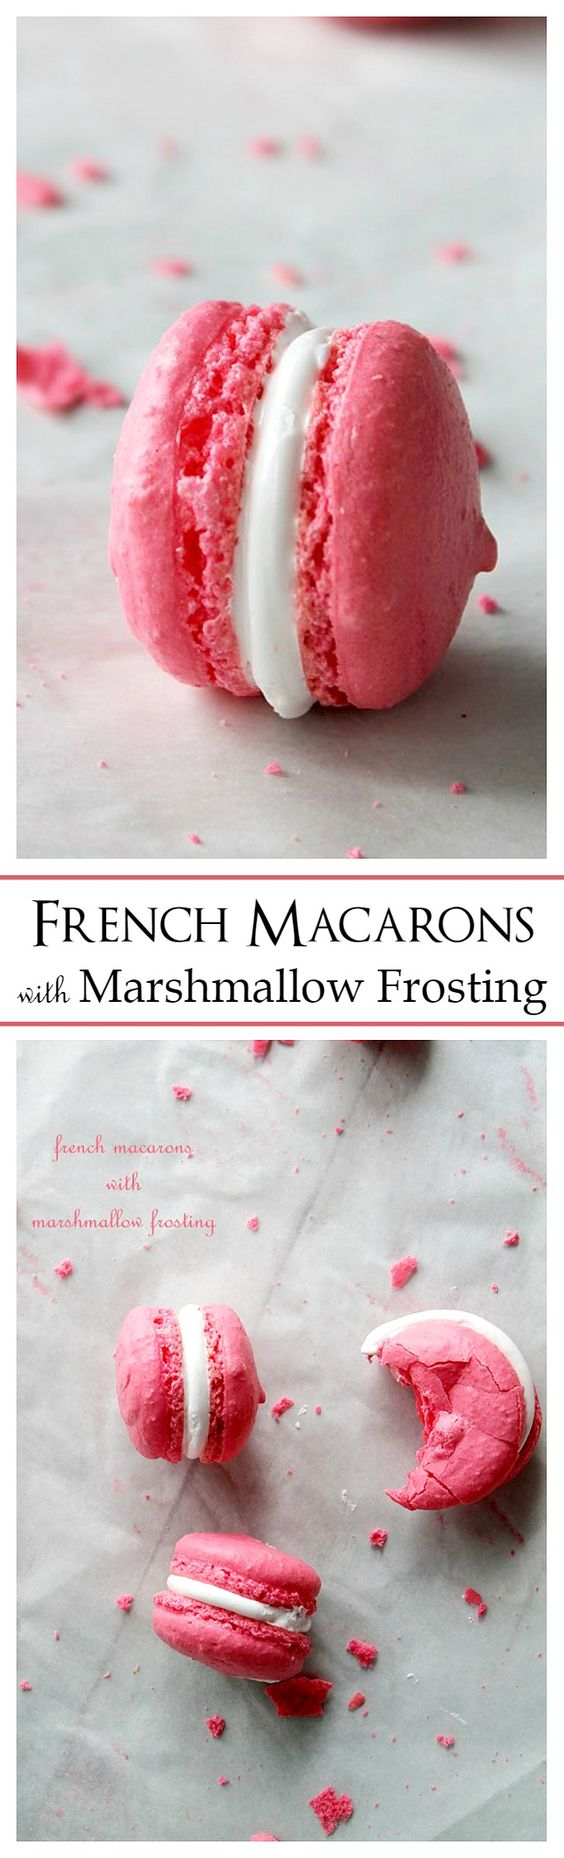 french macaroons walking dead online french macaron marshmallow creme ...